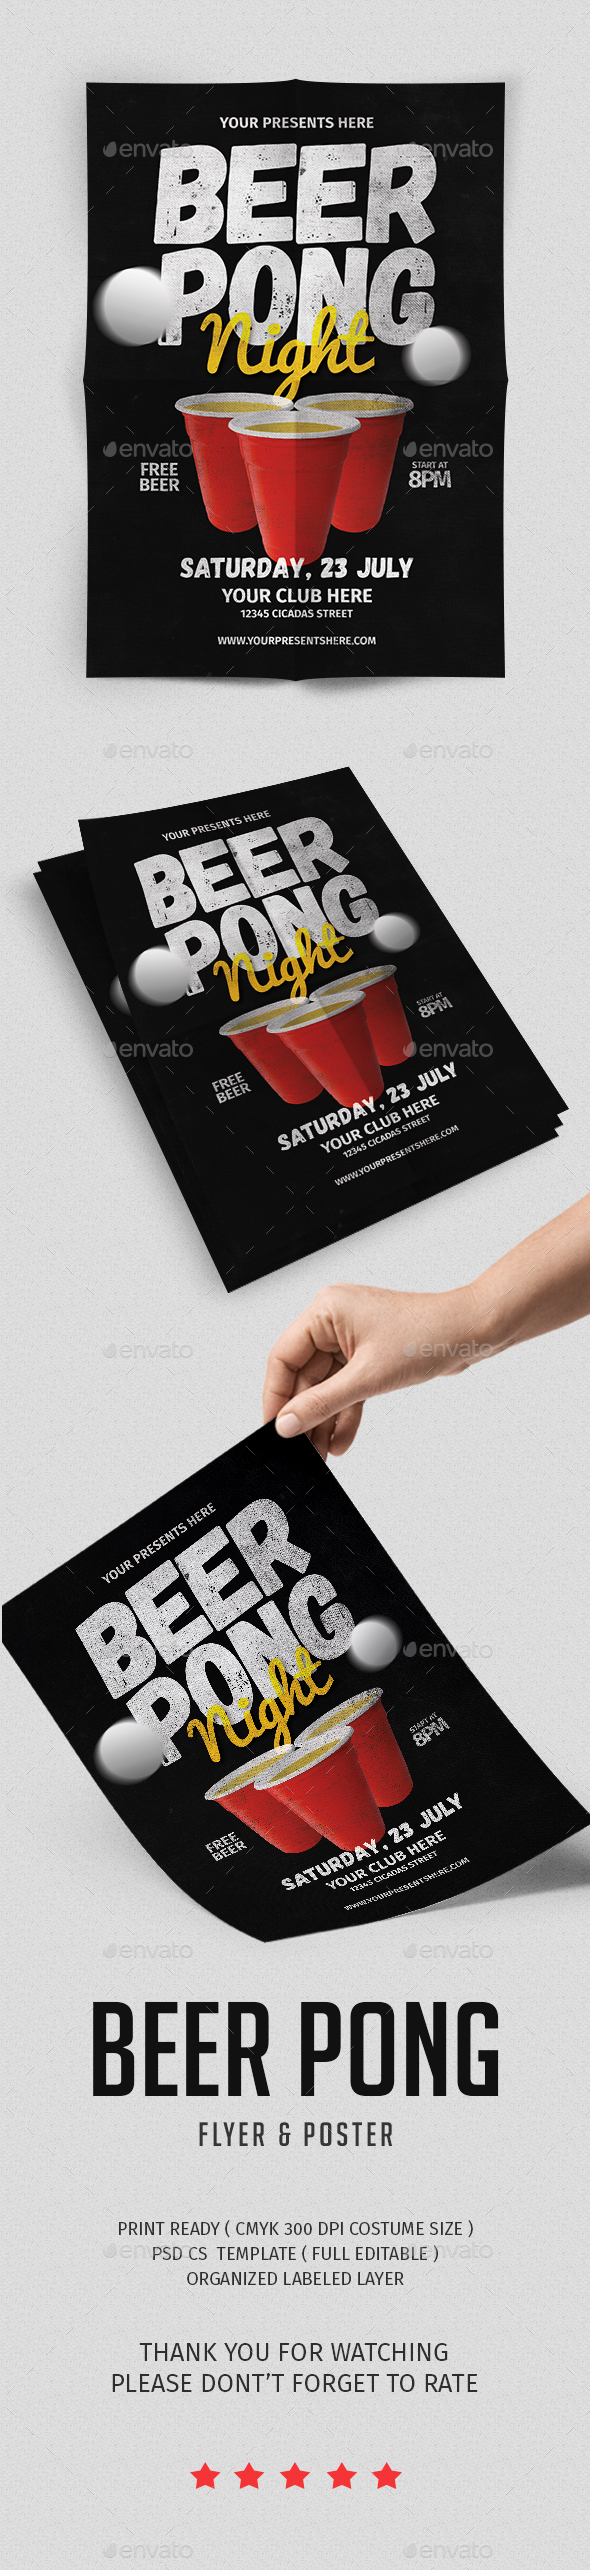 Beer Pong Flyer - Flyers Print Templates